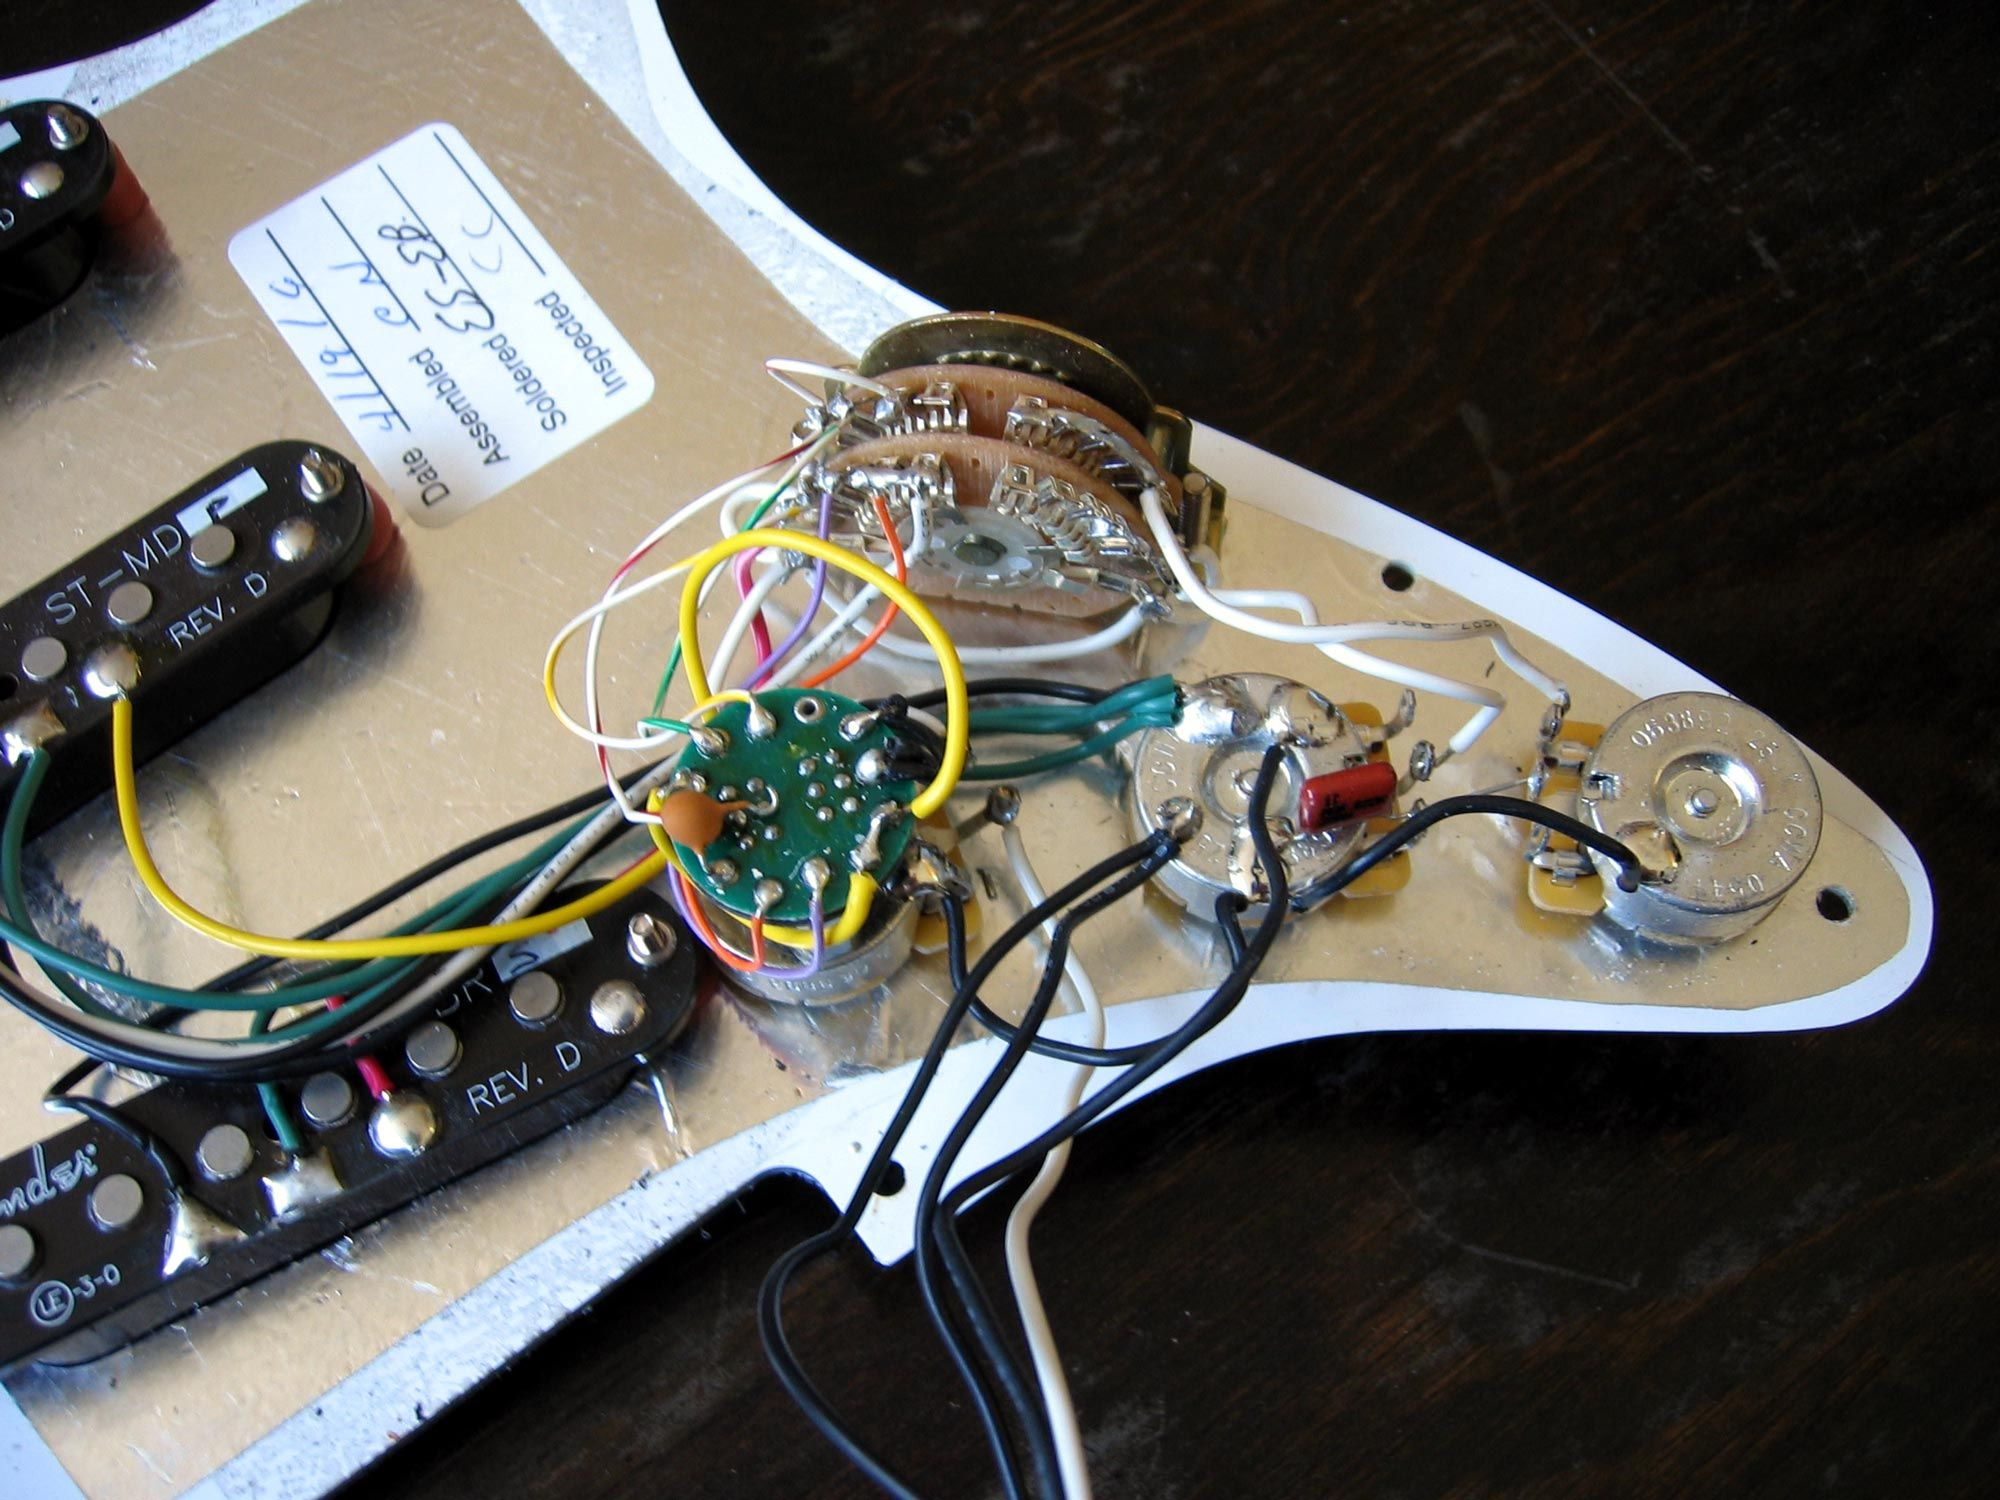 Groovy Fender Deluxe Stratocaster W S 1 Switch Wiring Diagram Guitar Wiring Cloud Eachirenstrafr09Org